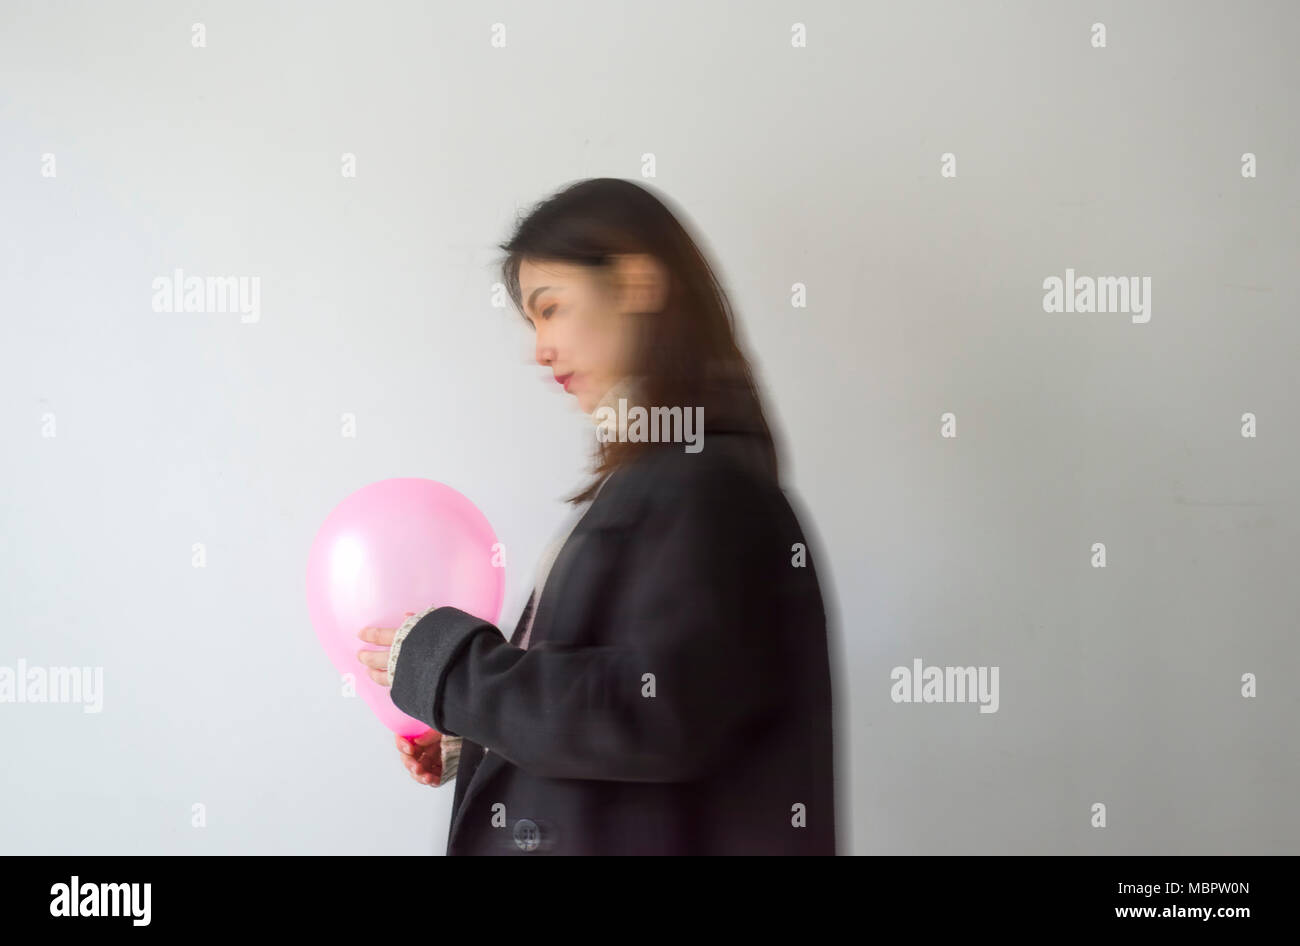 Concept photograph, Young woman blowing a yellow balloon. - Stock Image